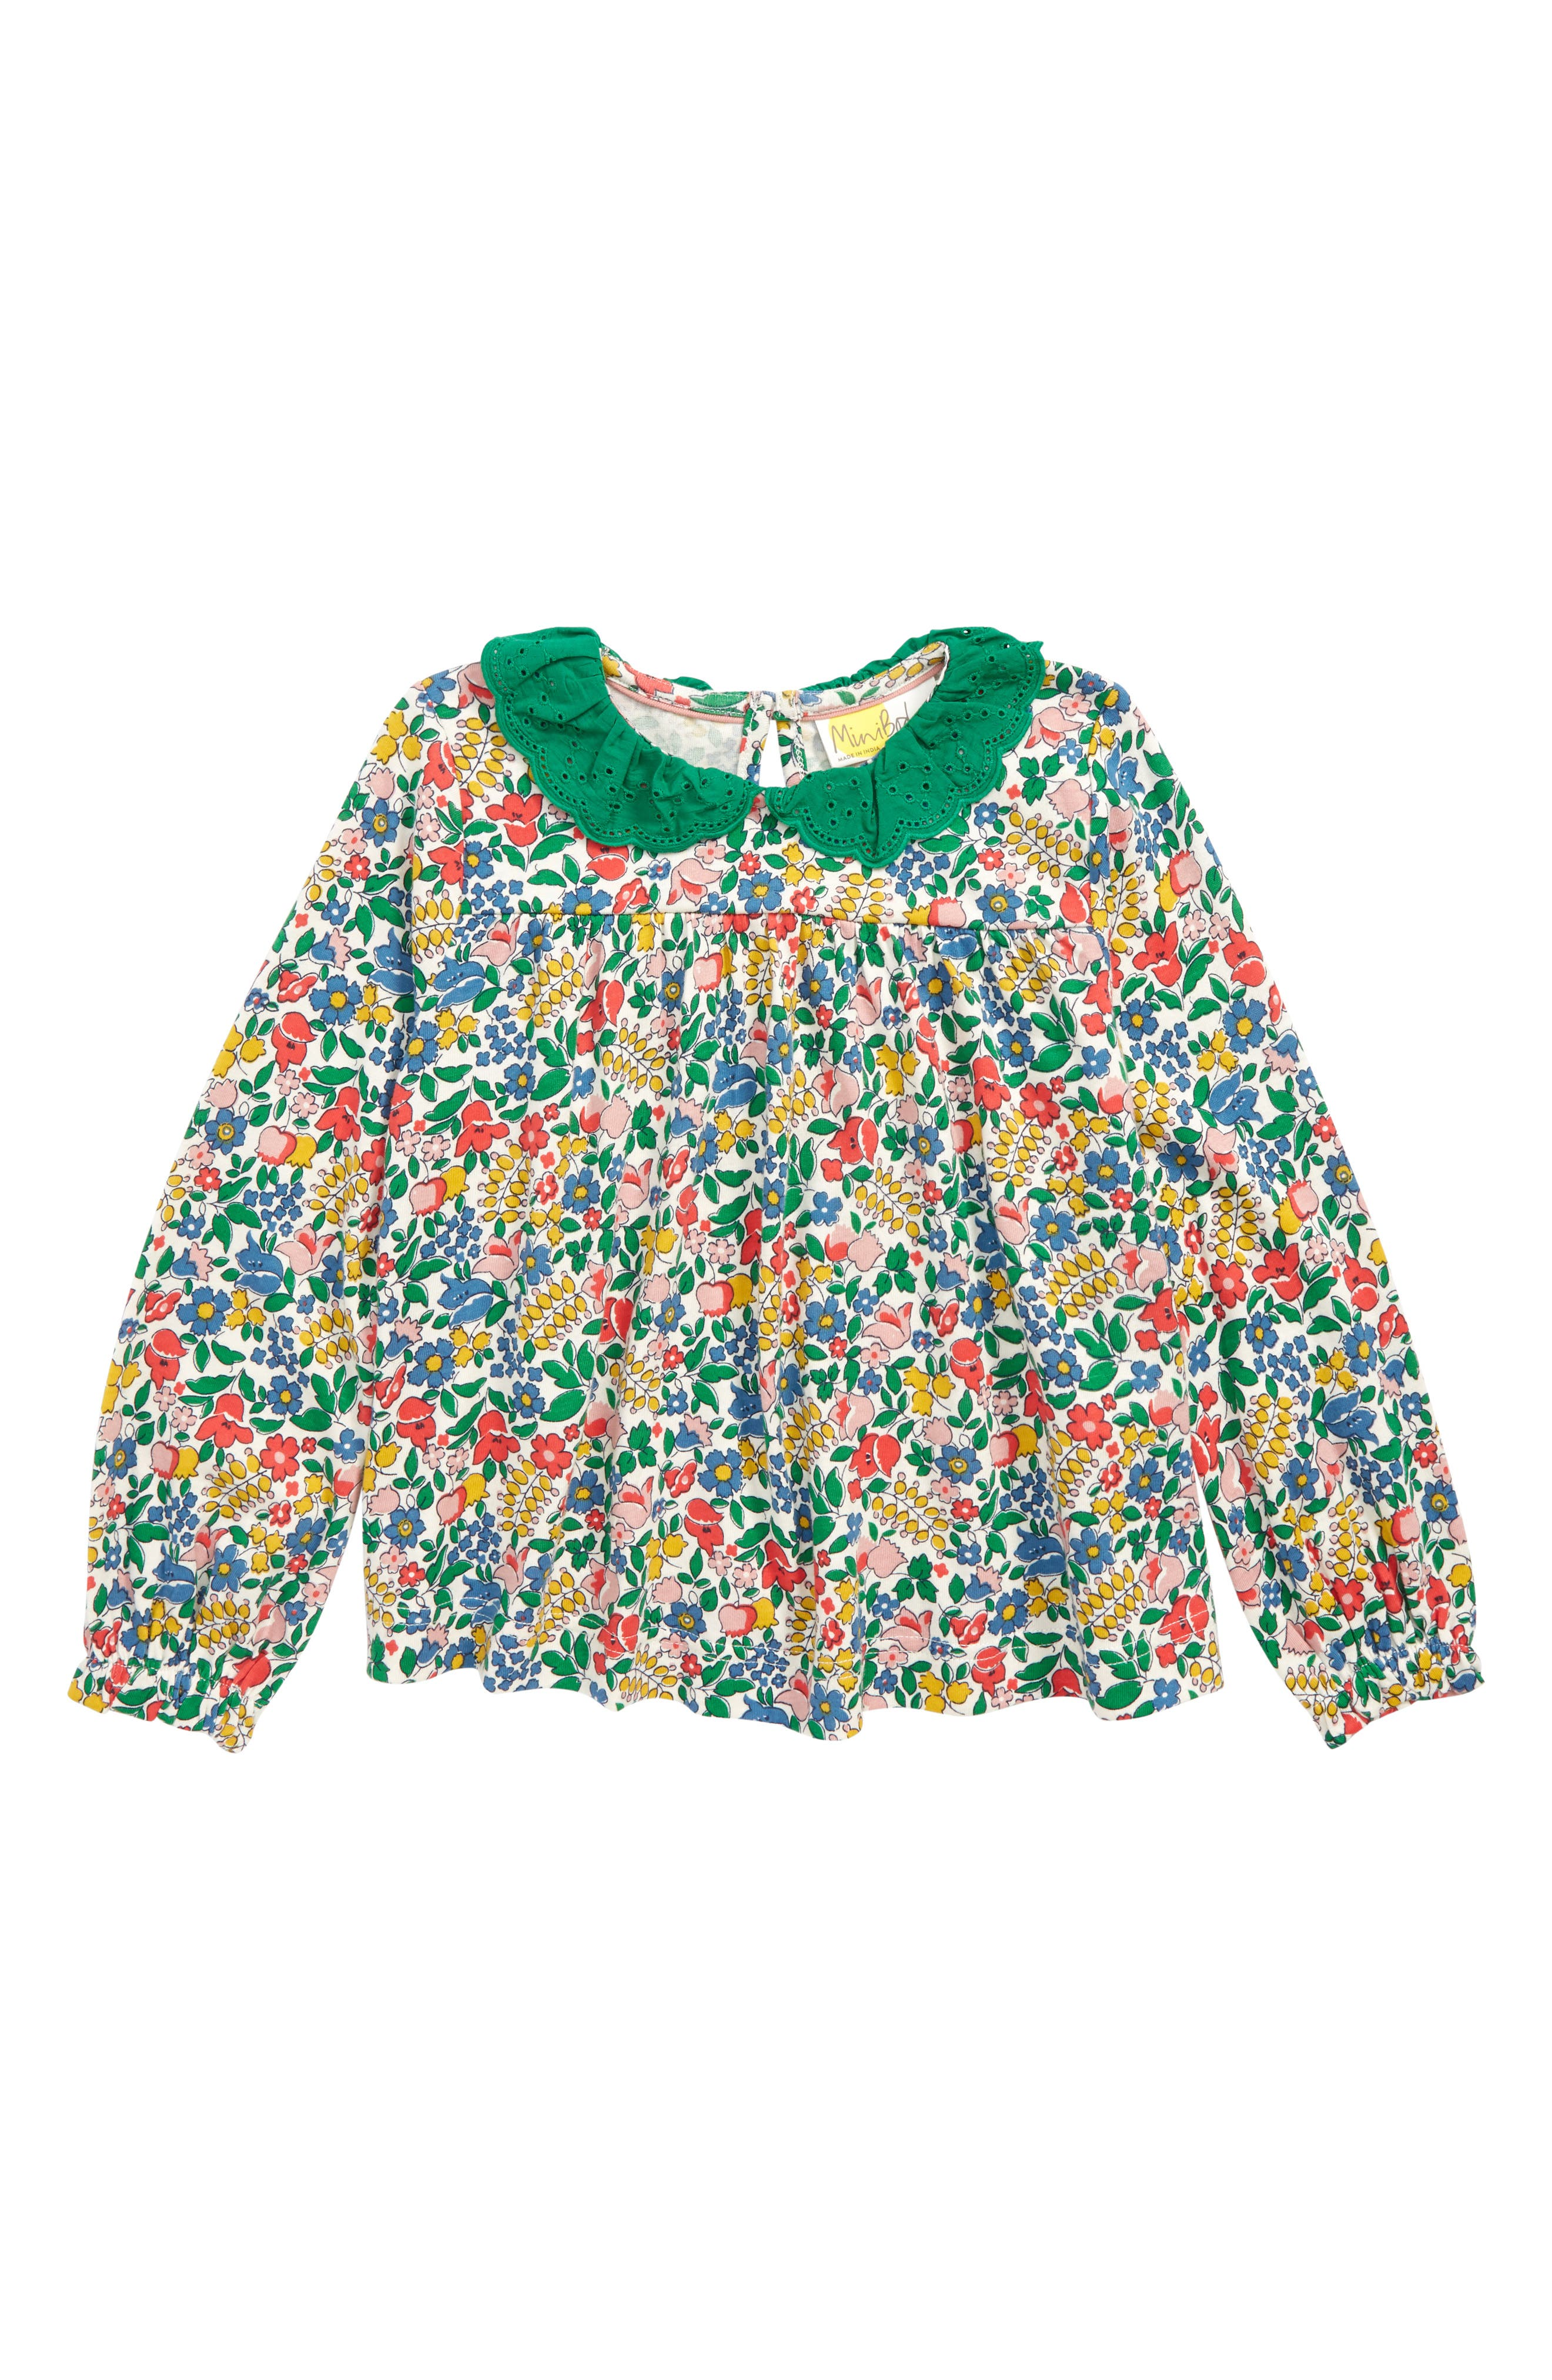 Broderie Collar Blouse,                         Main,                         color, MULTI FLOWERBED